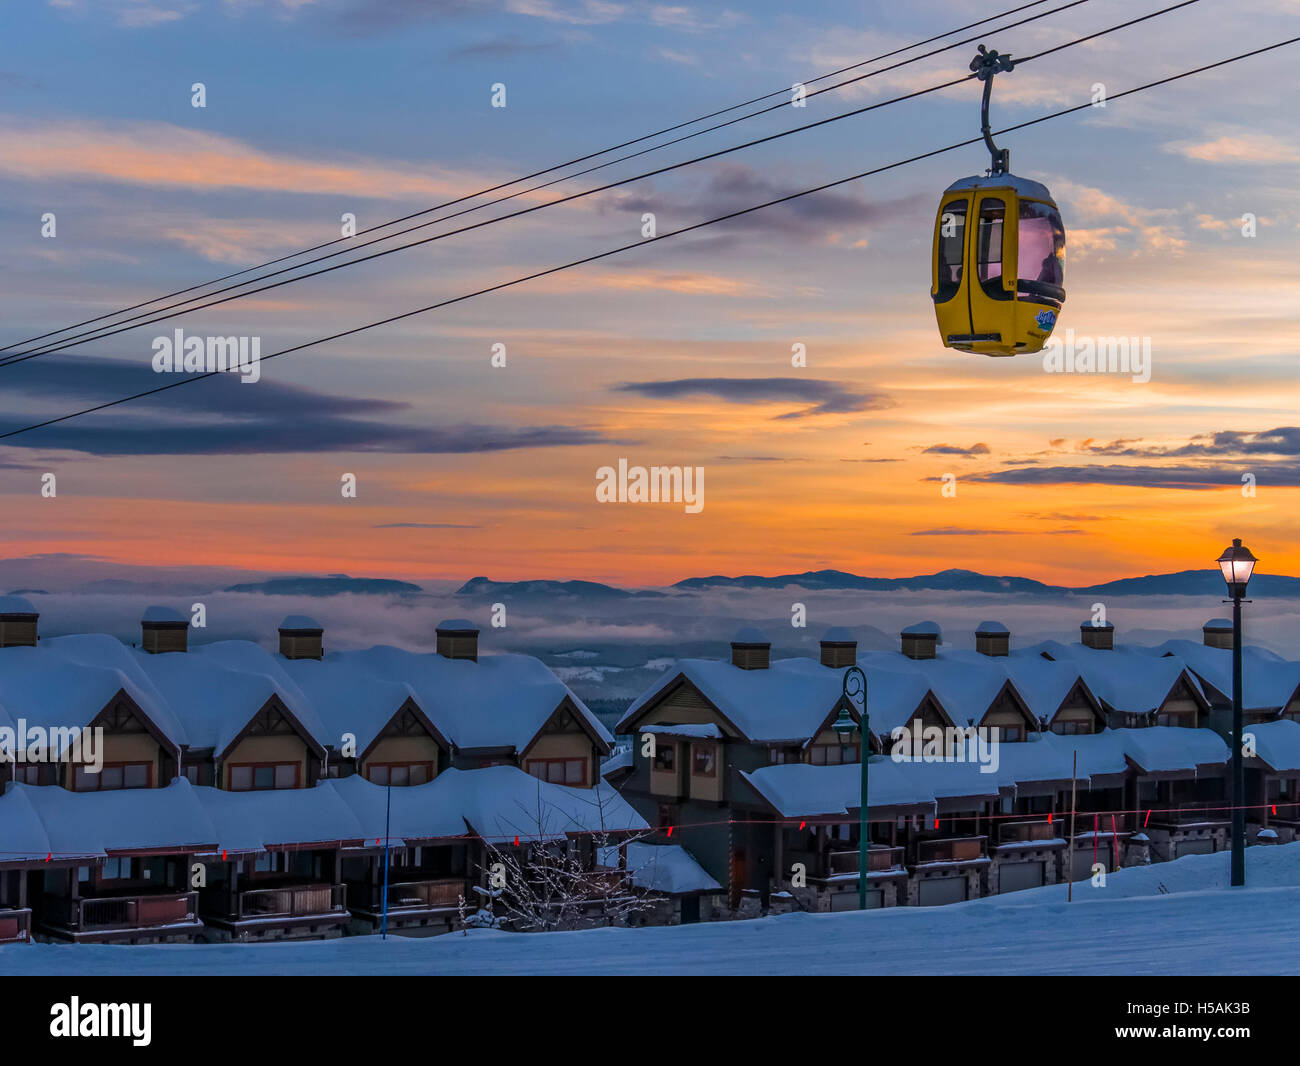 Sunset and gondola, Big White Ski Resort, British Columbia, Canada. - Stock Image